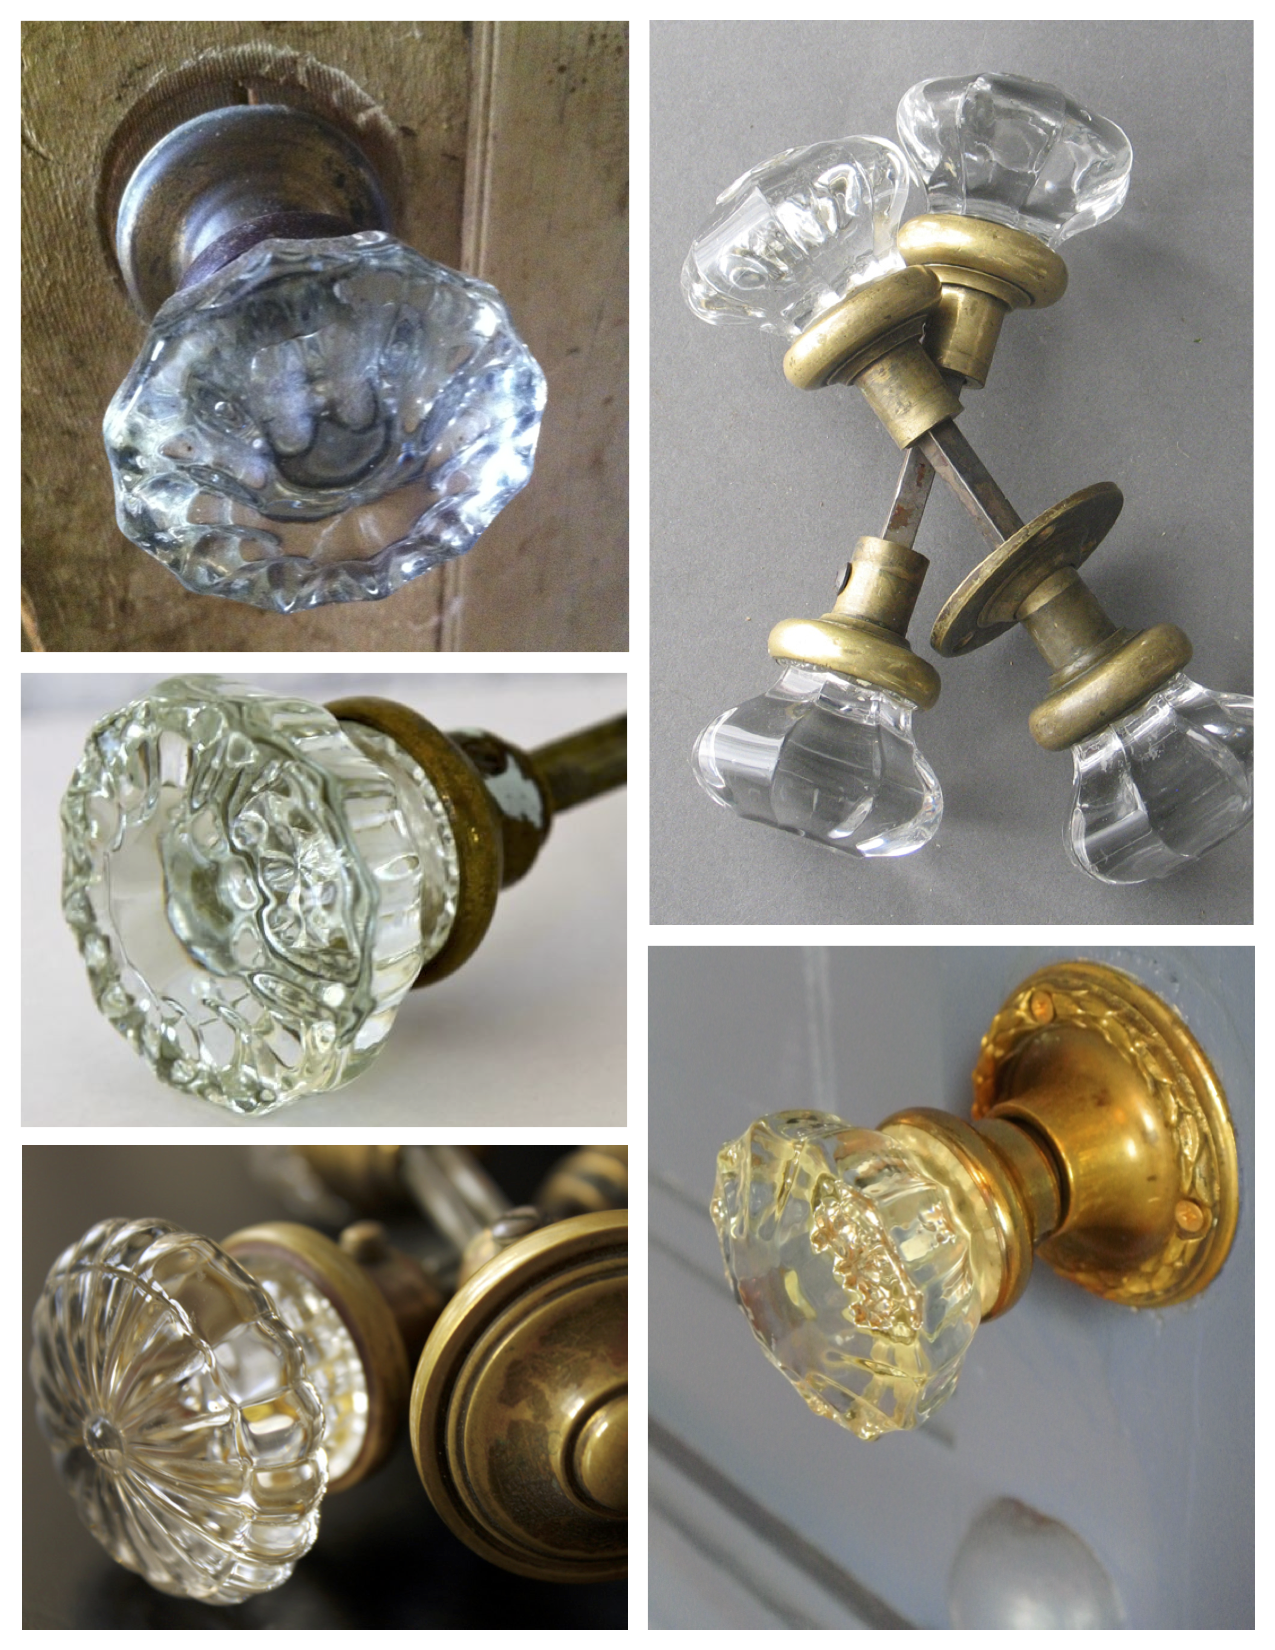 Multifaceted Style In Clear Glass The Vintage Door Knob